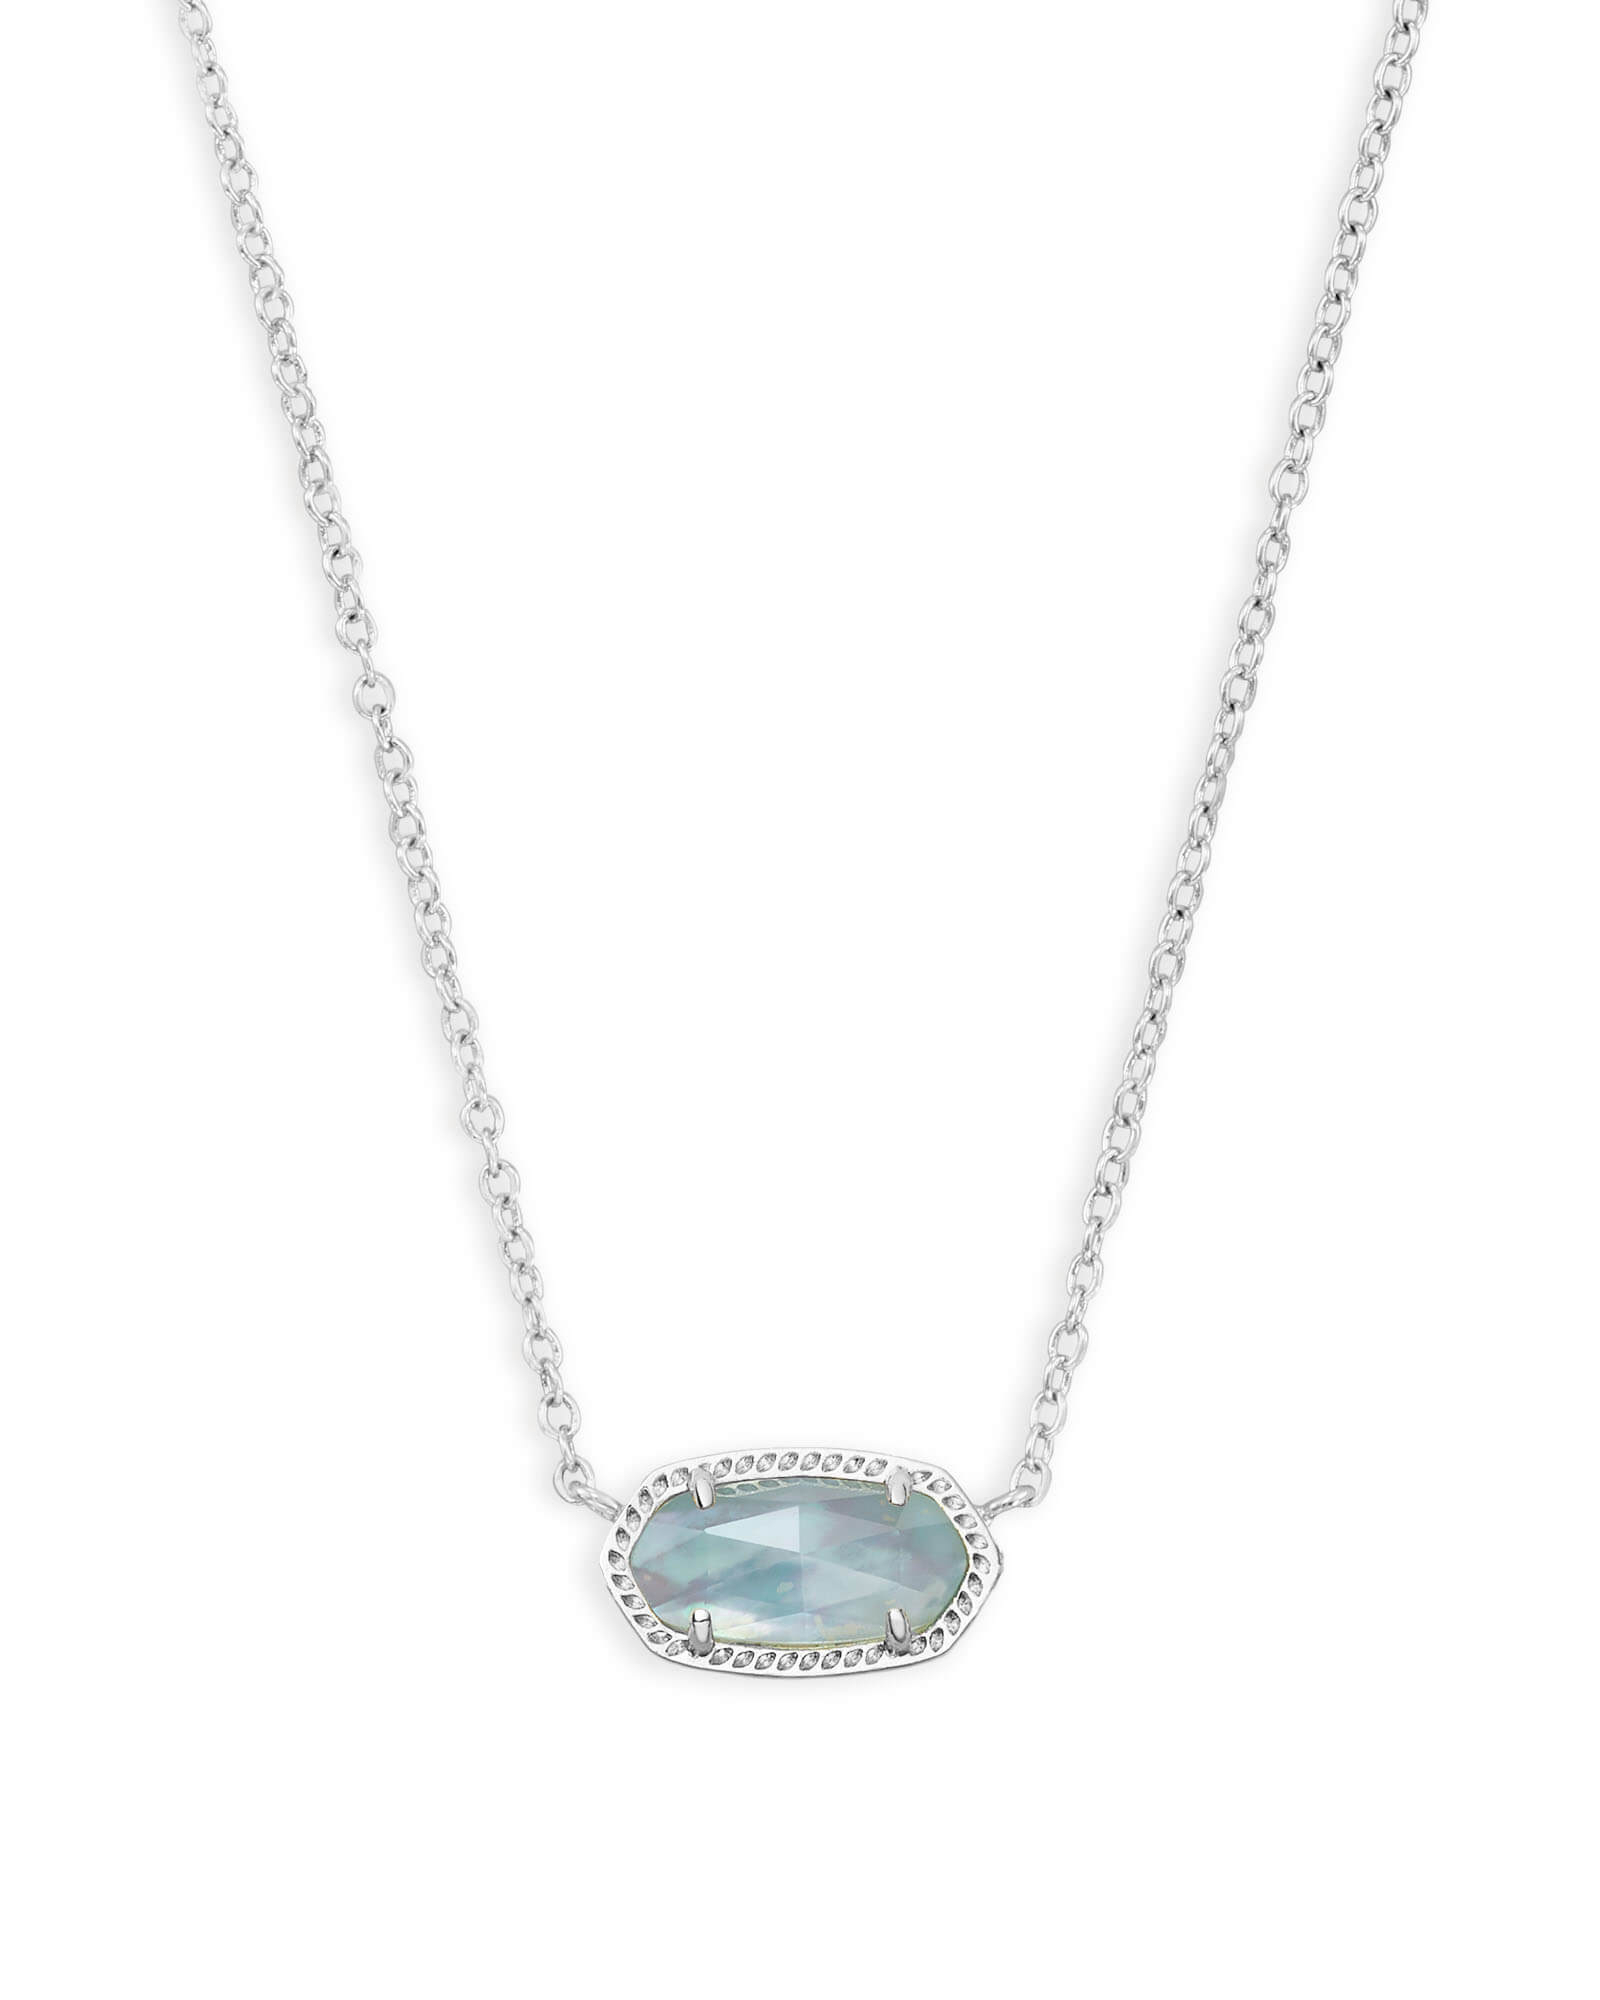 Elisa Silver Pendant Necklace In Light Blue | Kendra Scott With Current Multi Colored Crystal Patterns Of Frost Pendant Necklaces (View 9 of 25)